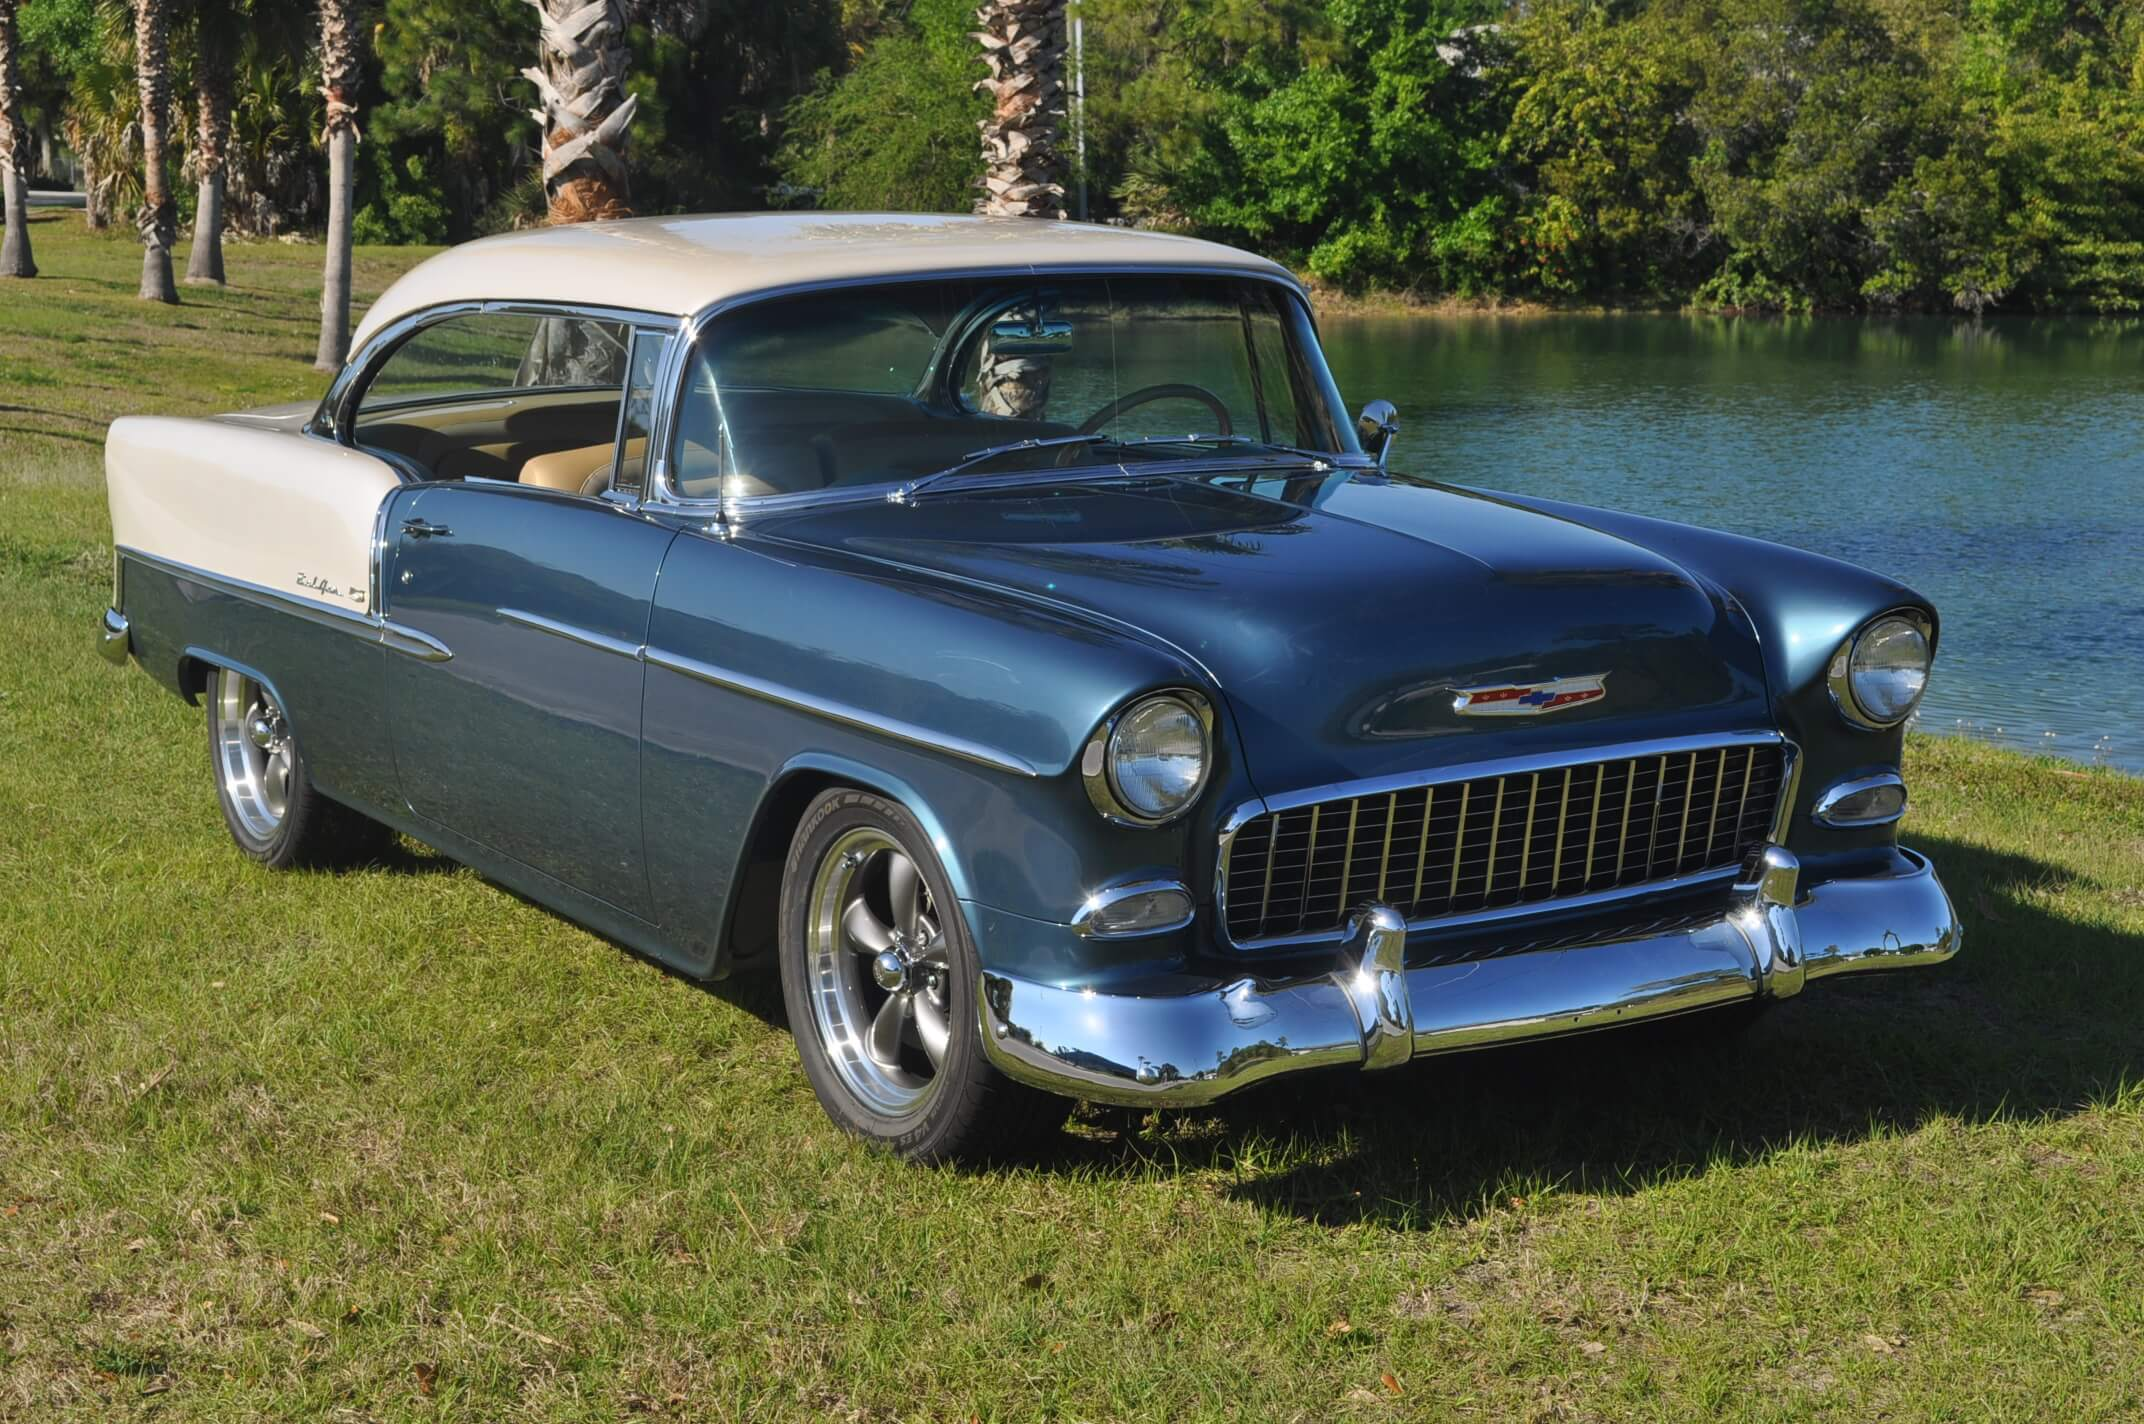 Paul Isman's 55 Bel Air done 143 Kidd Darrin's Restoration and Custom Cars Melbourne Florida